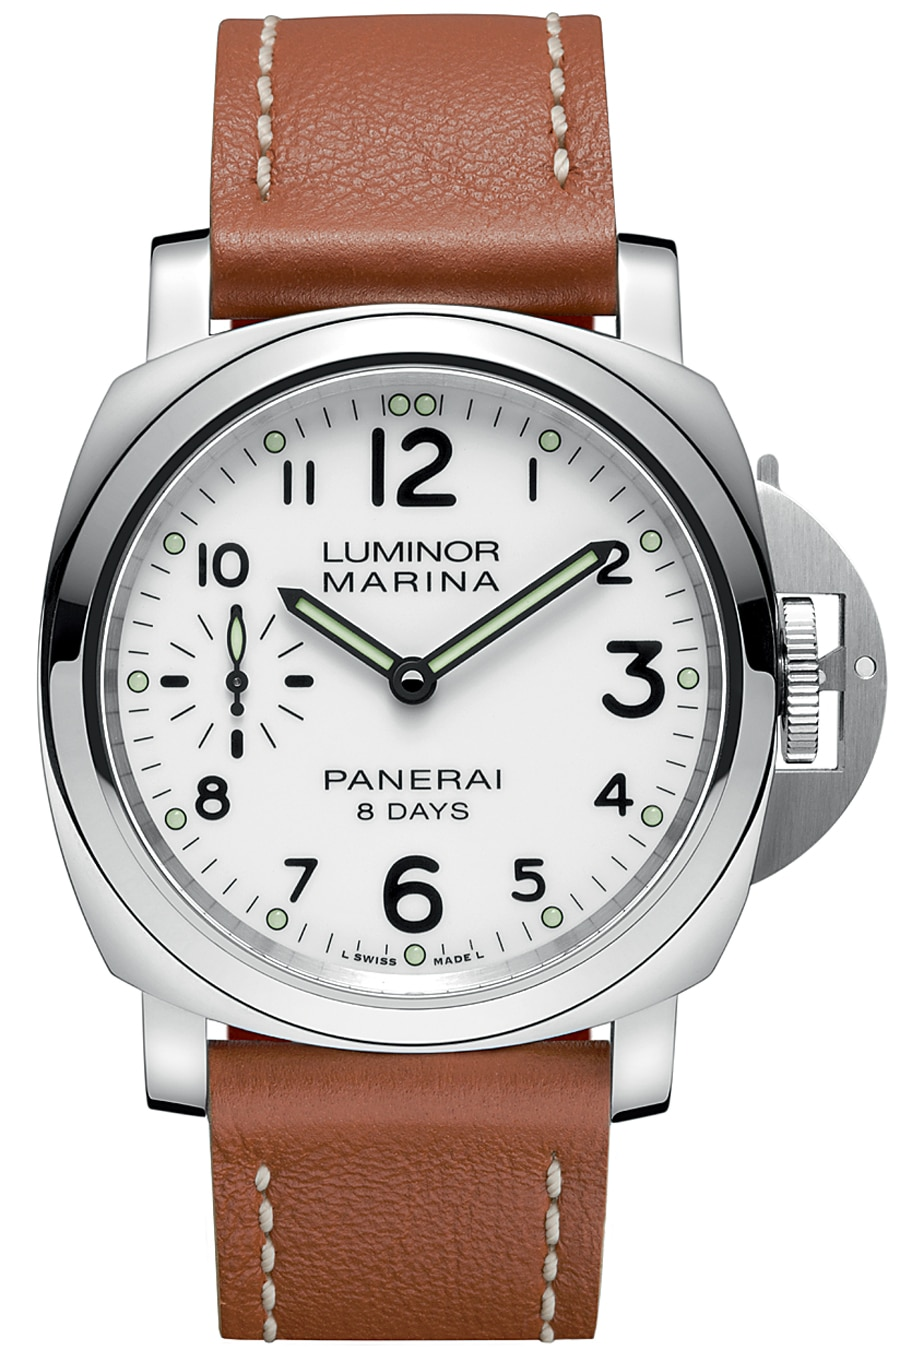 Panerai: Luminor Marina 8 Days Acciaio 44 mm